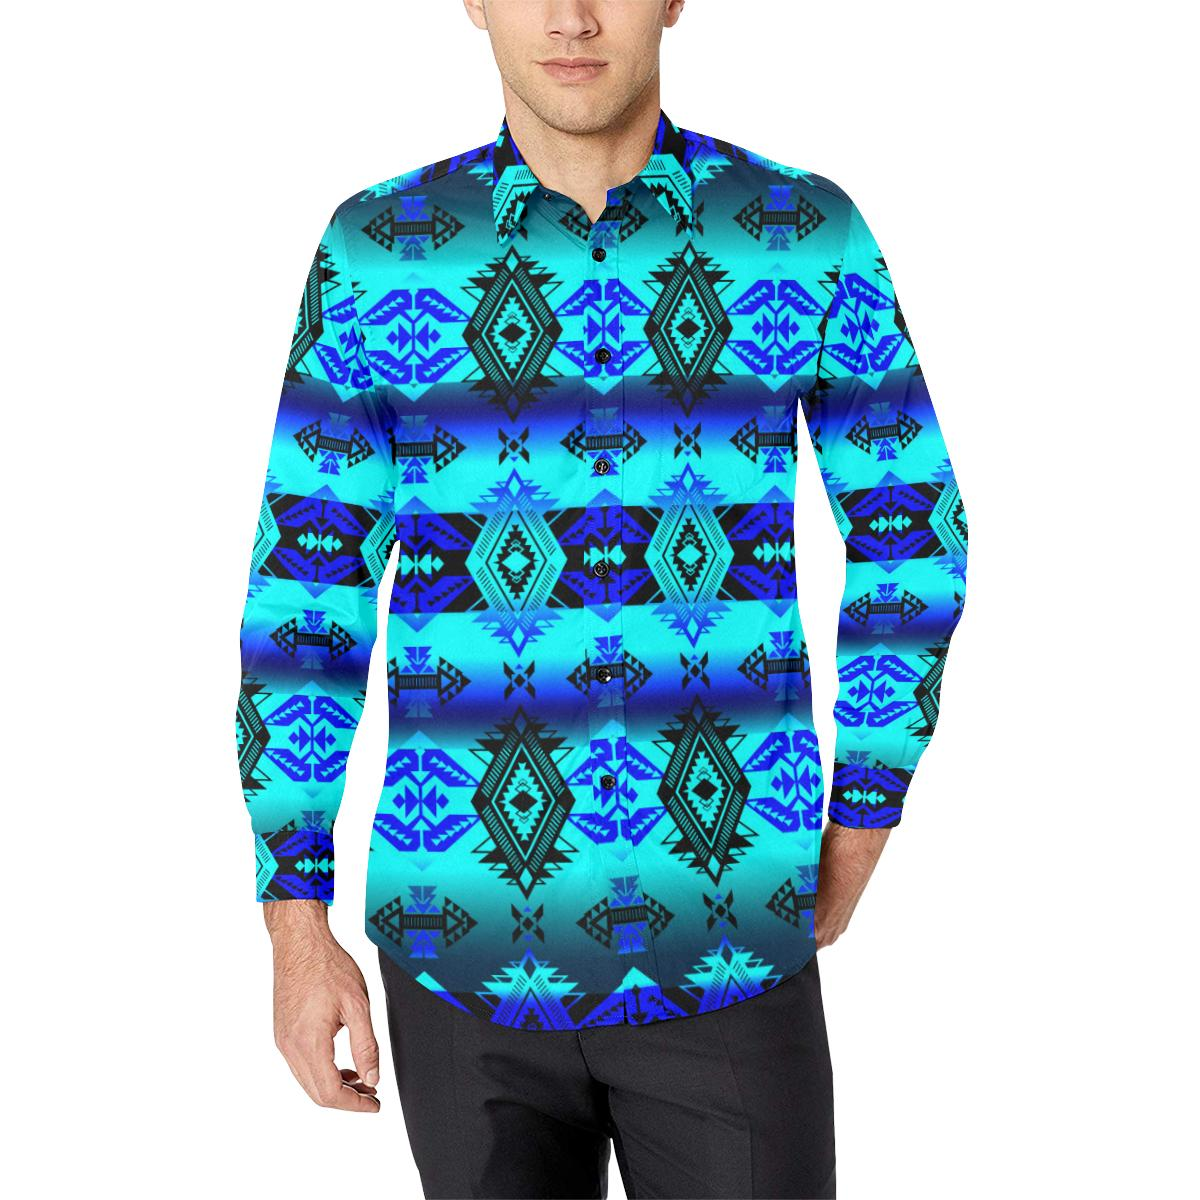 Soveriegn Nation Midnight Men's All Over Print Casual Dress Shirt (Model T61) Men's Dress Shirt (T61) e-joyer